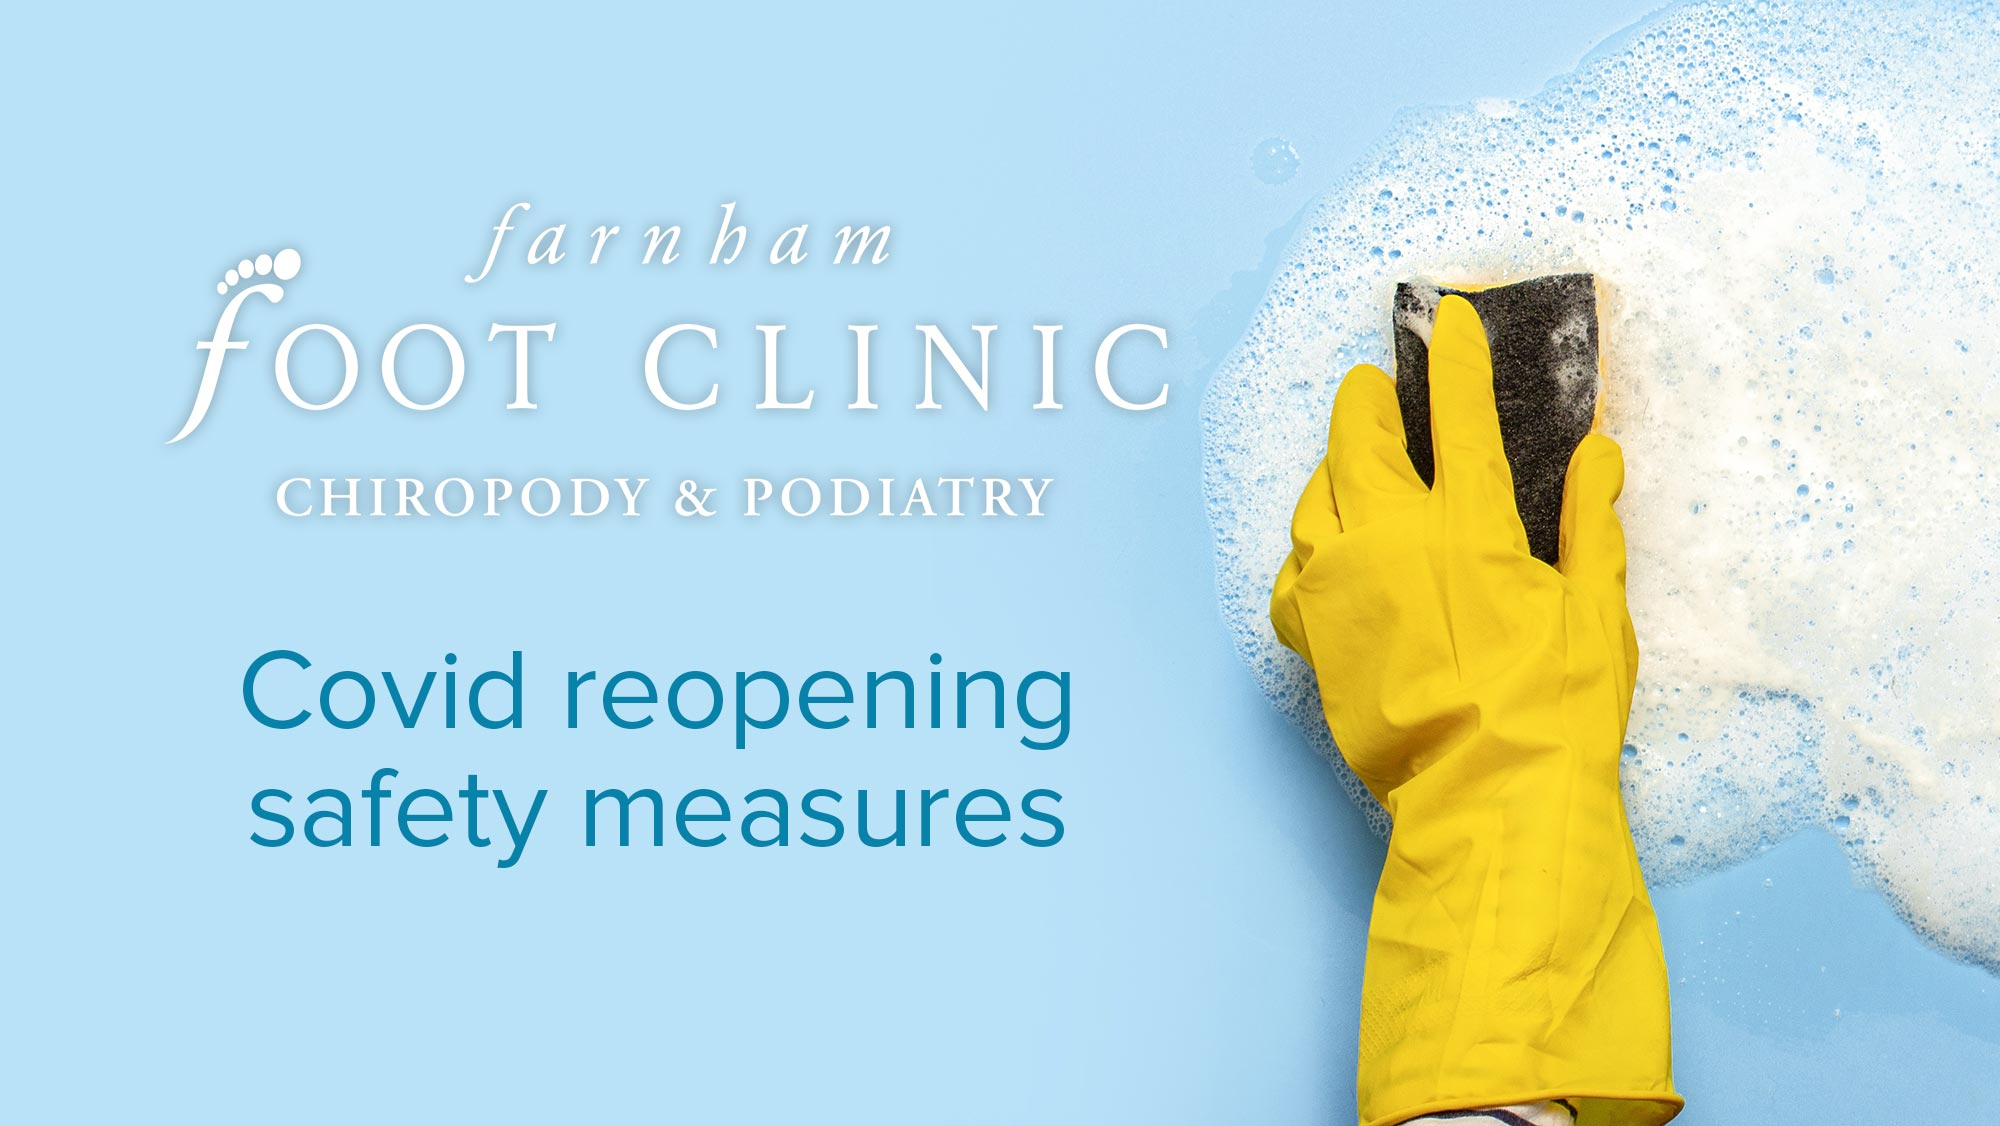 Farnham Foot Clinic Reopening Safety Measures